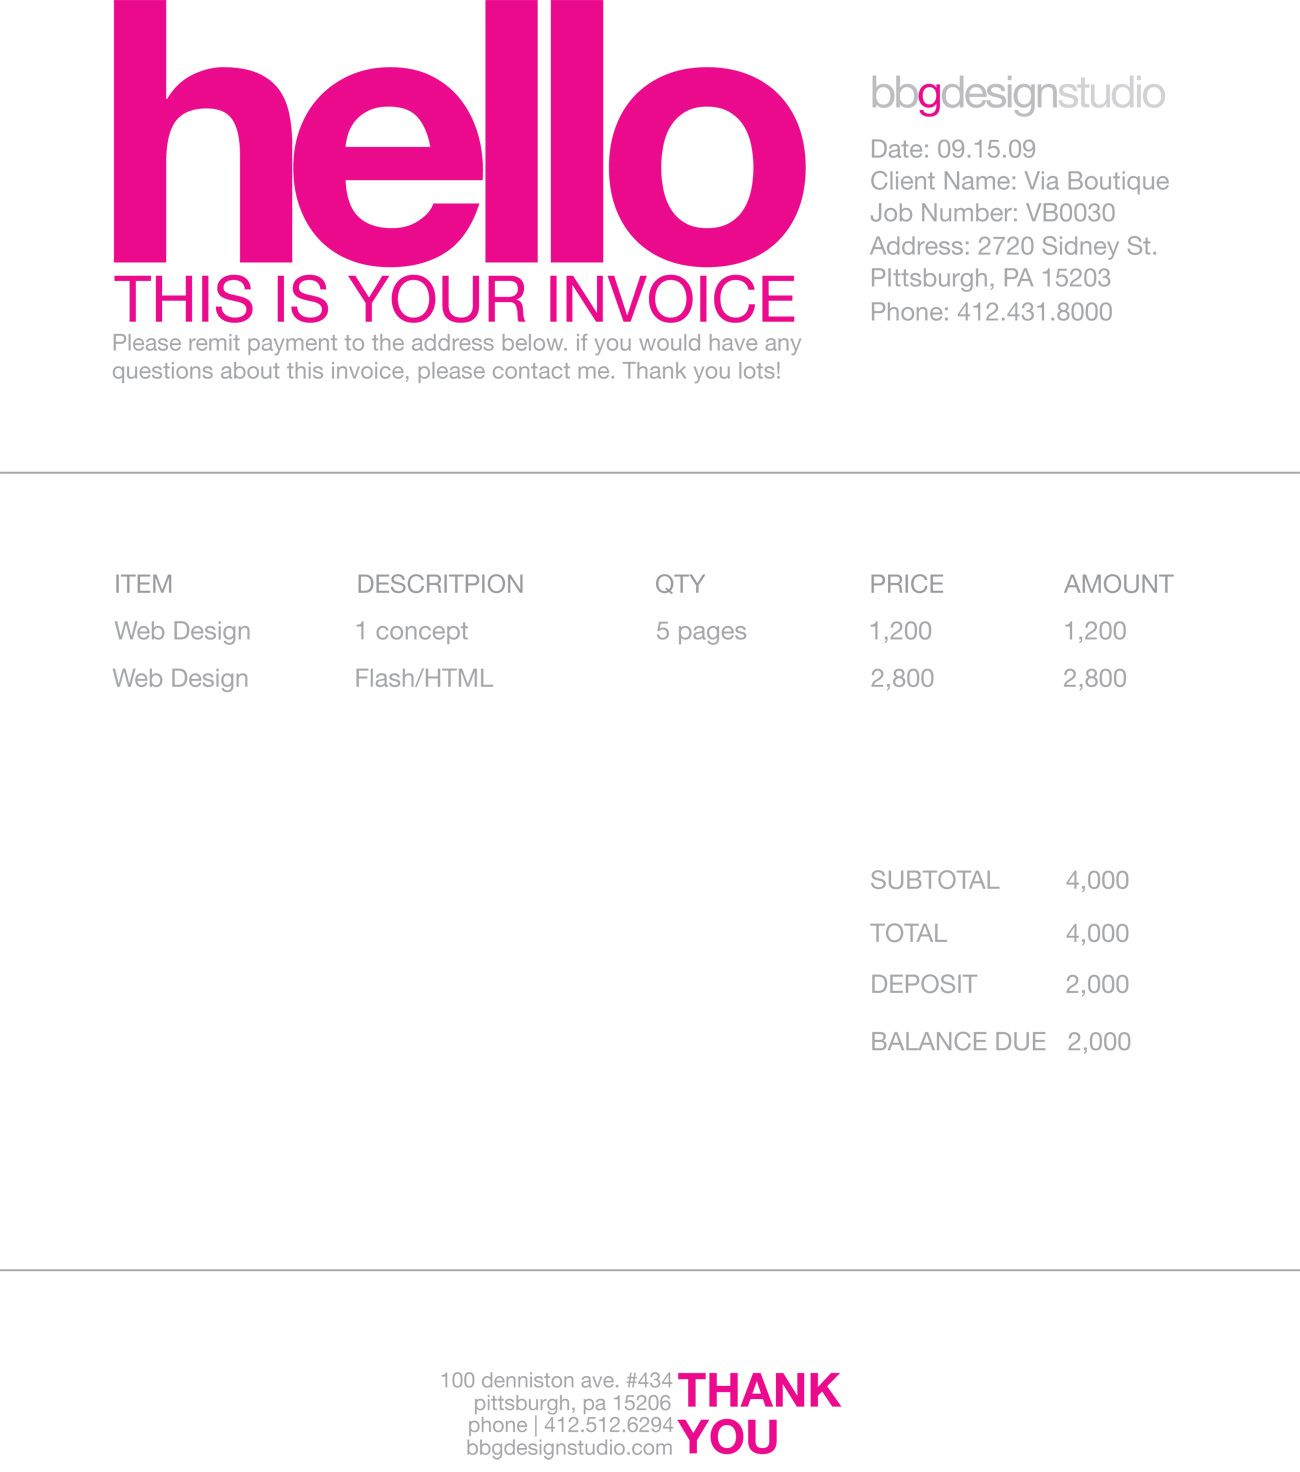 Pxworkoutfreeus  Fascinating  Images About Invoice Design On Pinterest With Exciting Stripe Create Invoice Besides  Nissan Altima Invoice Price Furthermore Instaform Invoices And Estimates Pro With Adorable Dodge Ram  Invoice Price Also Proforma Invoice Format For Export In Addition Express Invoice Software And Recurring Invoice Paypal As Well As Catering Invoice Samples Additionally Apple Numbers Invoice Template From Pinterestcom With Pxworkoutfreeus  Exciting  Images About Invoice Design On Pinterest With Adorable Stripe Create Invoice Besides  Nissan Altima Invoice Price Furthermore Instaform Invoices And Estimates Pro And Fascinating Dodge Ram  Invoice Price Also Proforma Invoice Format For Export In Addition Express Invoice Software From Pinterestcom